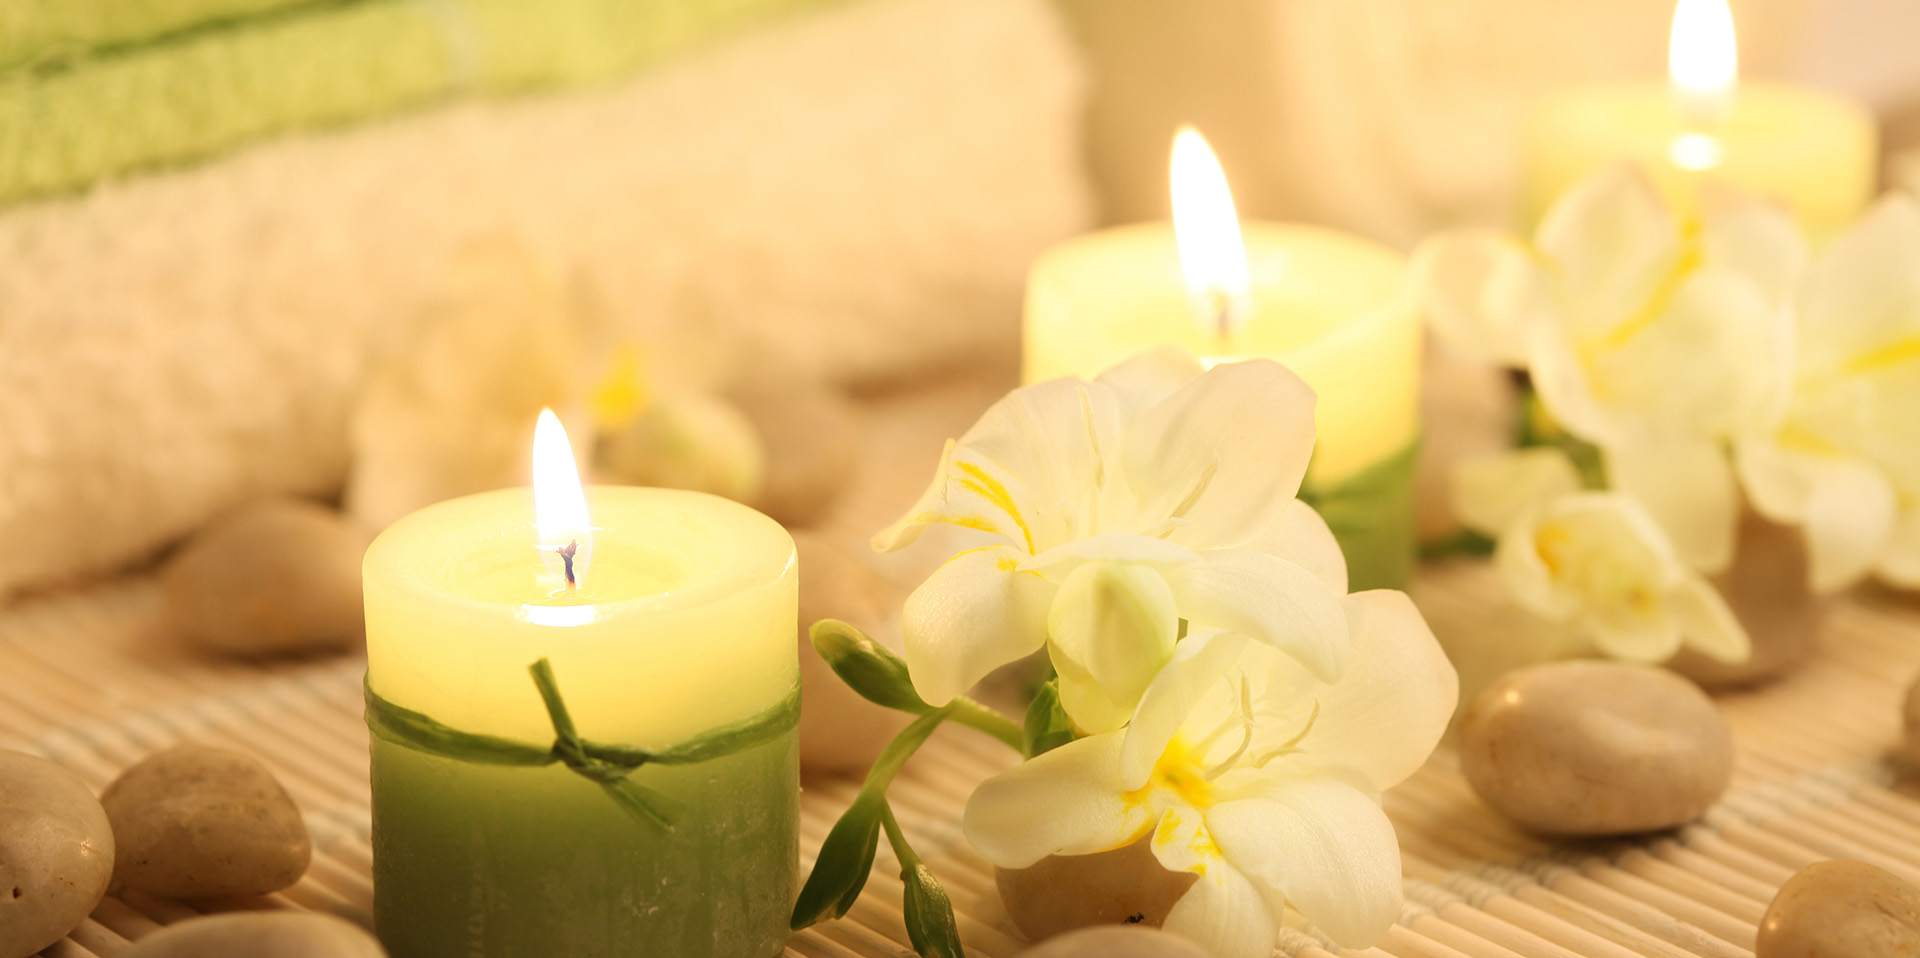 Royal Health Therapies main image: towels, flowers, and candles in soft greens, browns, and yellows